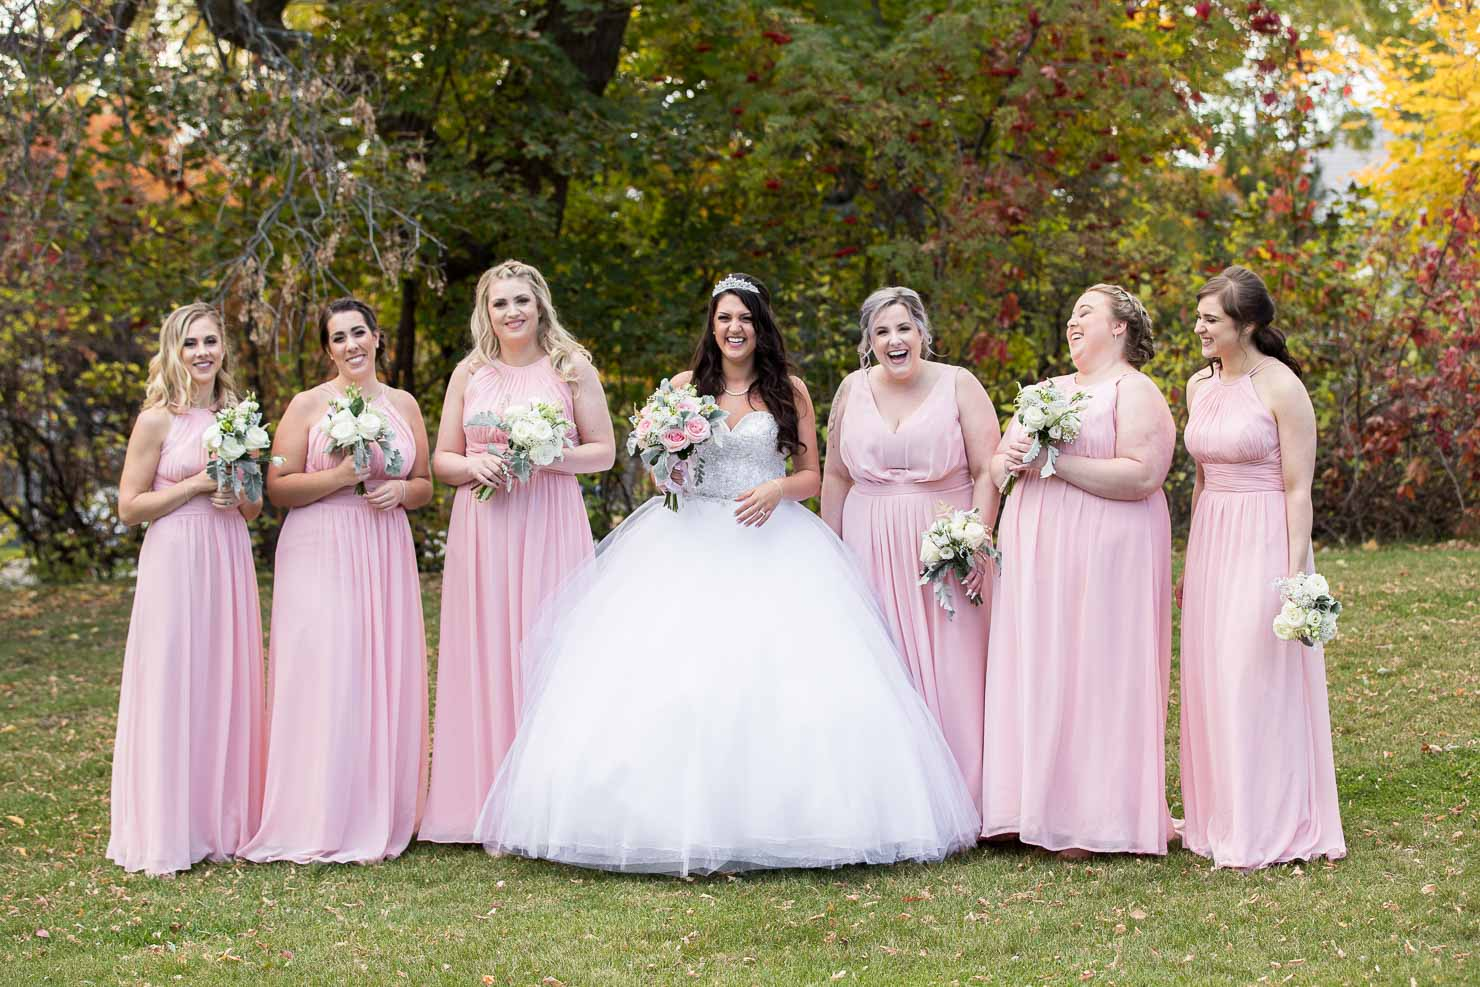 wedding, bride, bridesmaids, wedding, sudbury wedding, akaiserphoto, wedding photographer